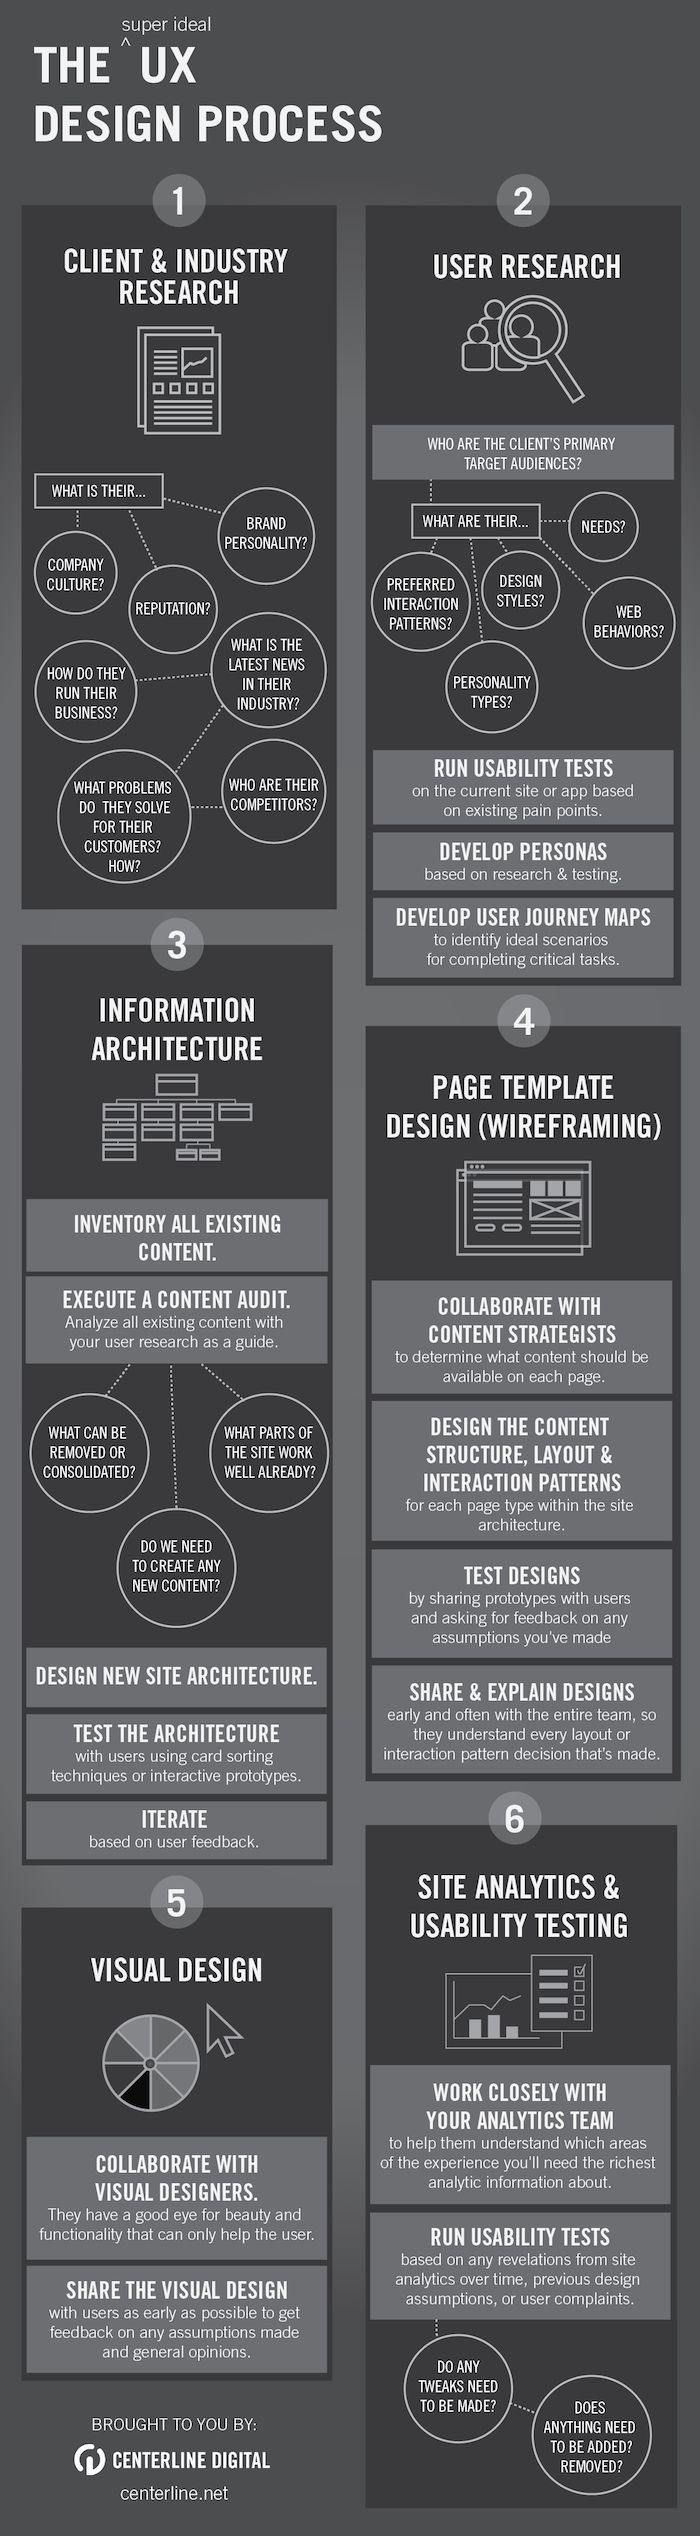 The User Experience Design Process – Infographic | Design: UI/UX. Apps. Websites |